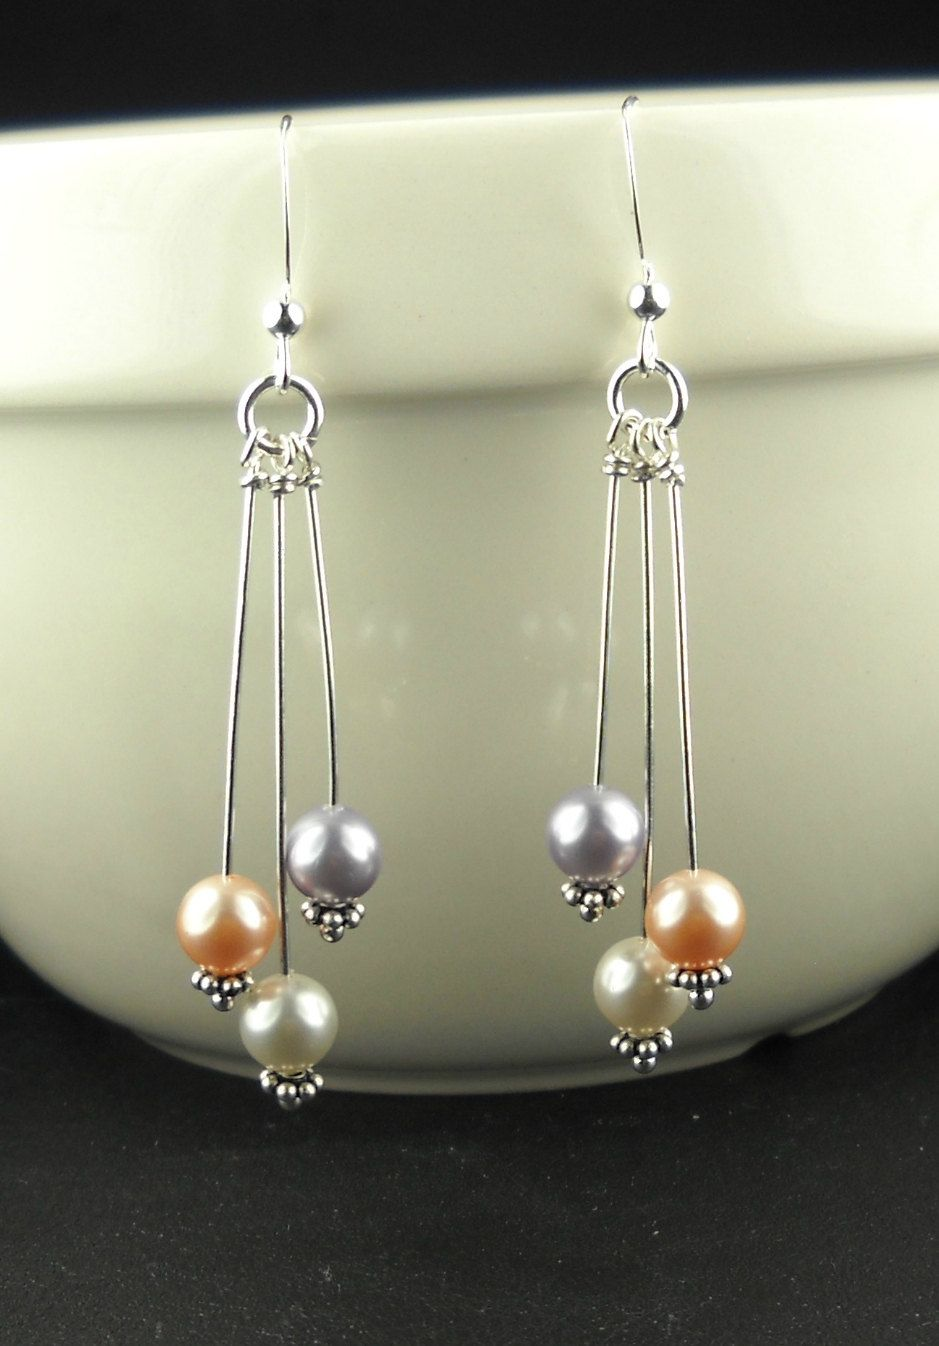 inspiration photo - these earrings are so cute! link goes to a